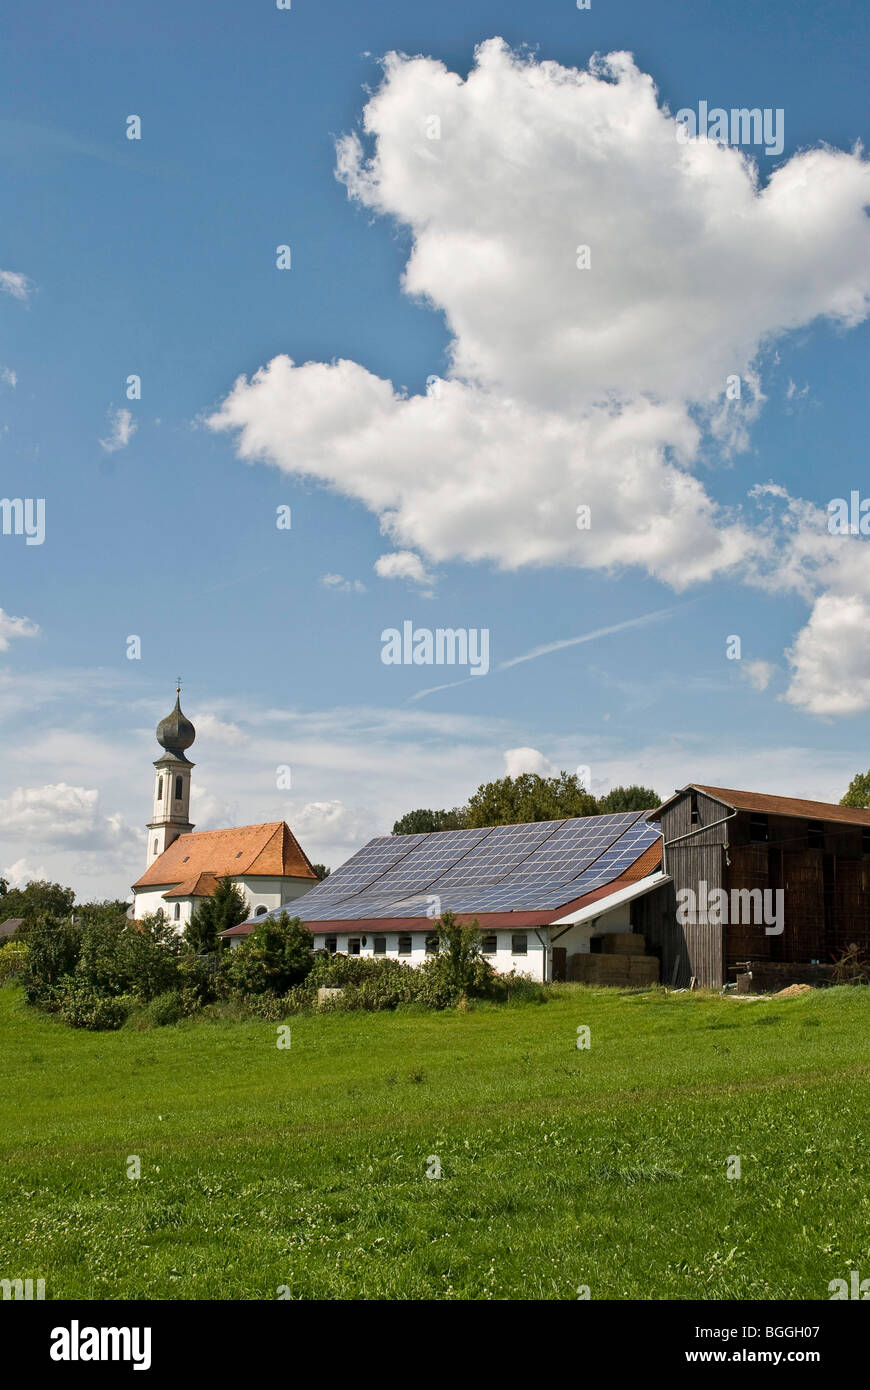 Solar system on an agricultural building in Bavaria, Germany - Stock Image